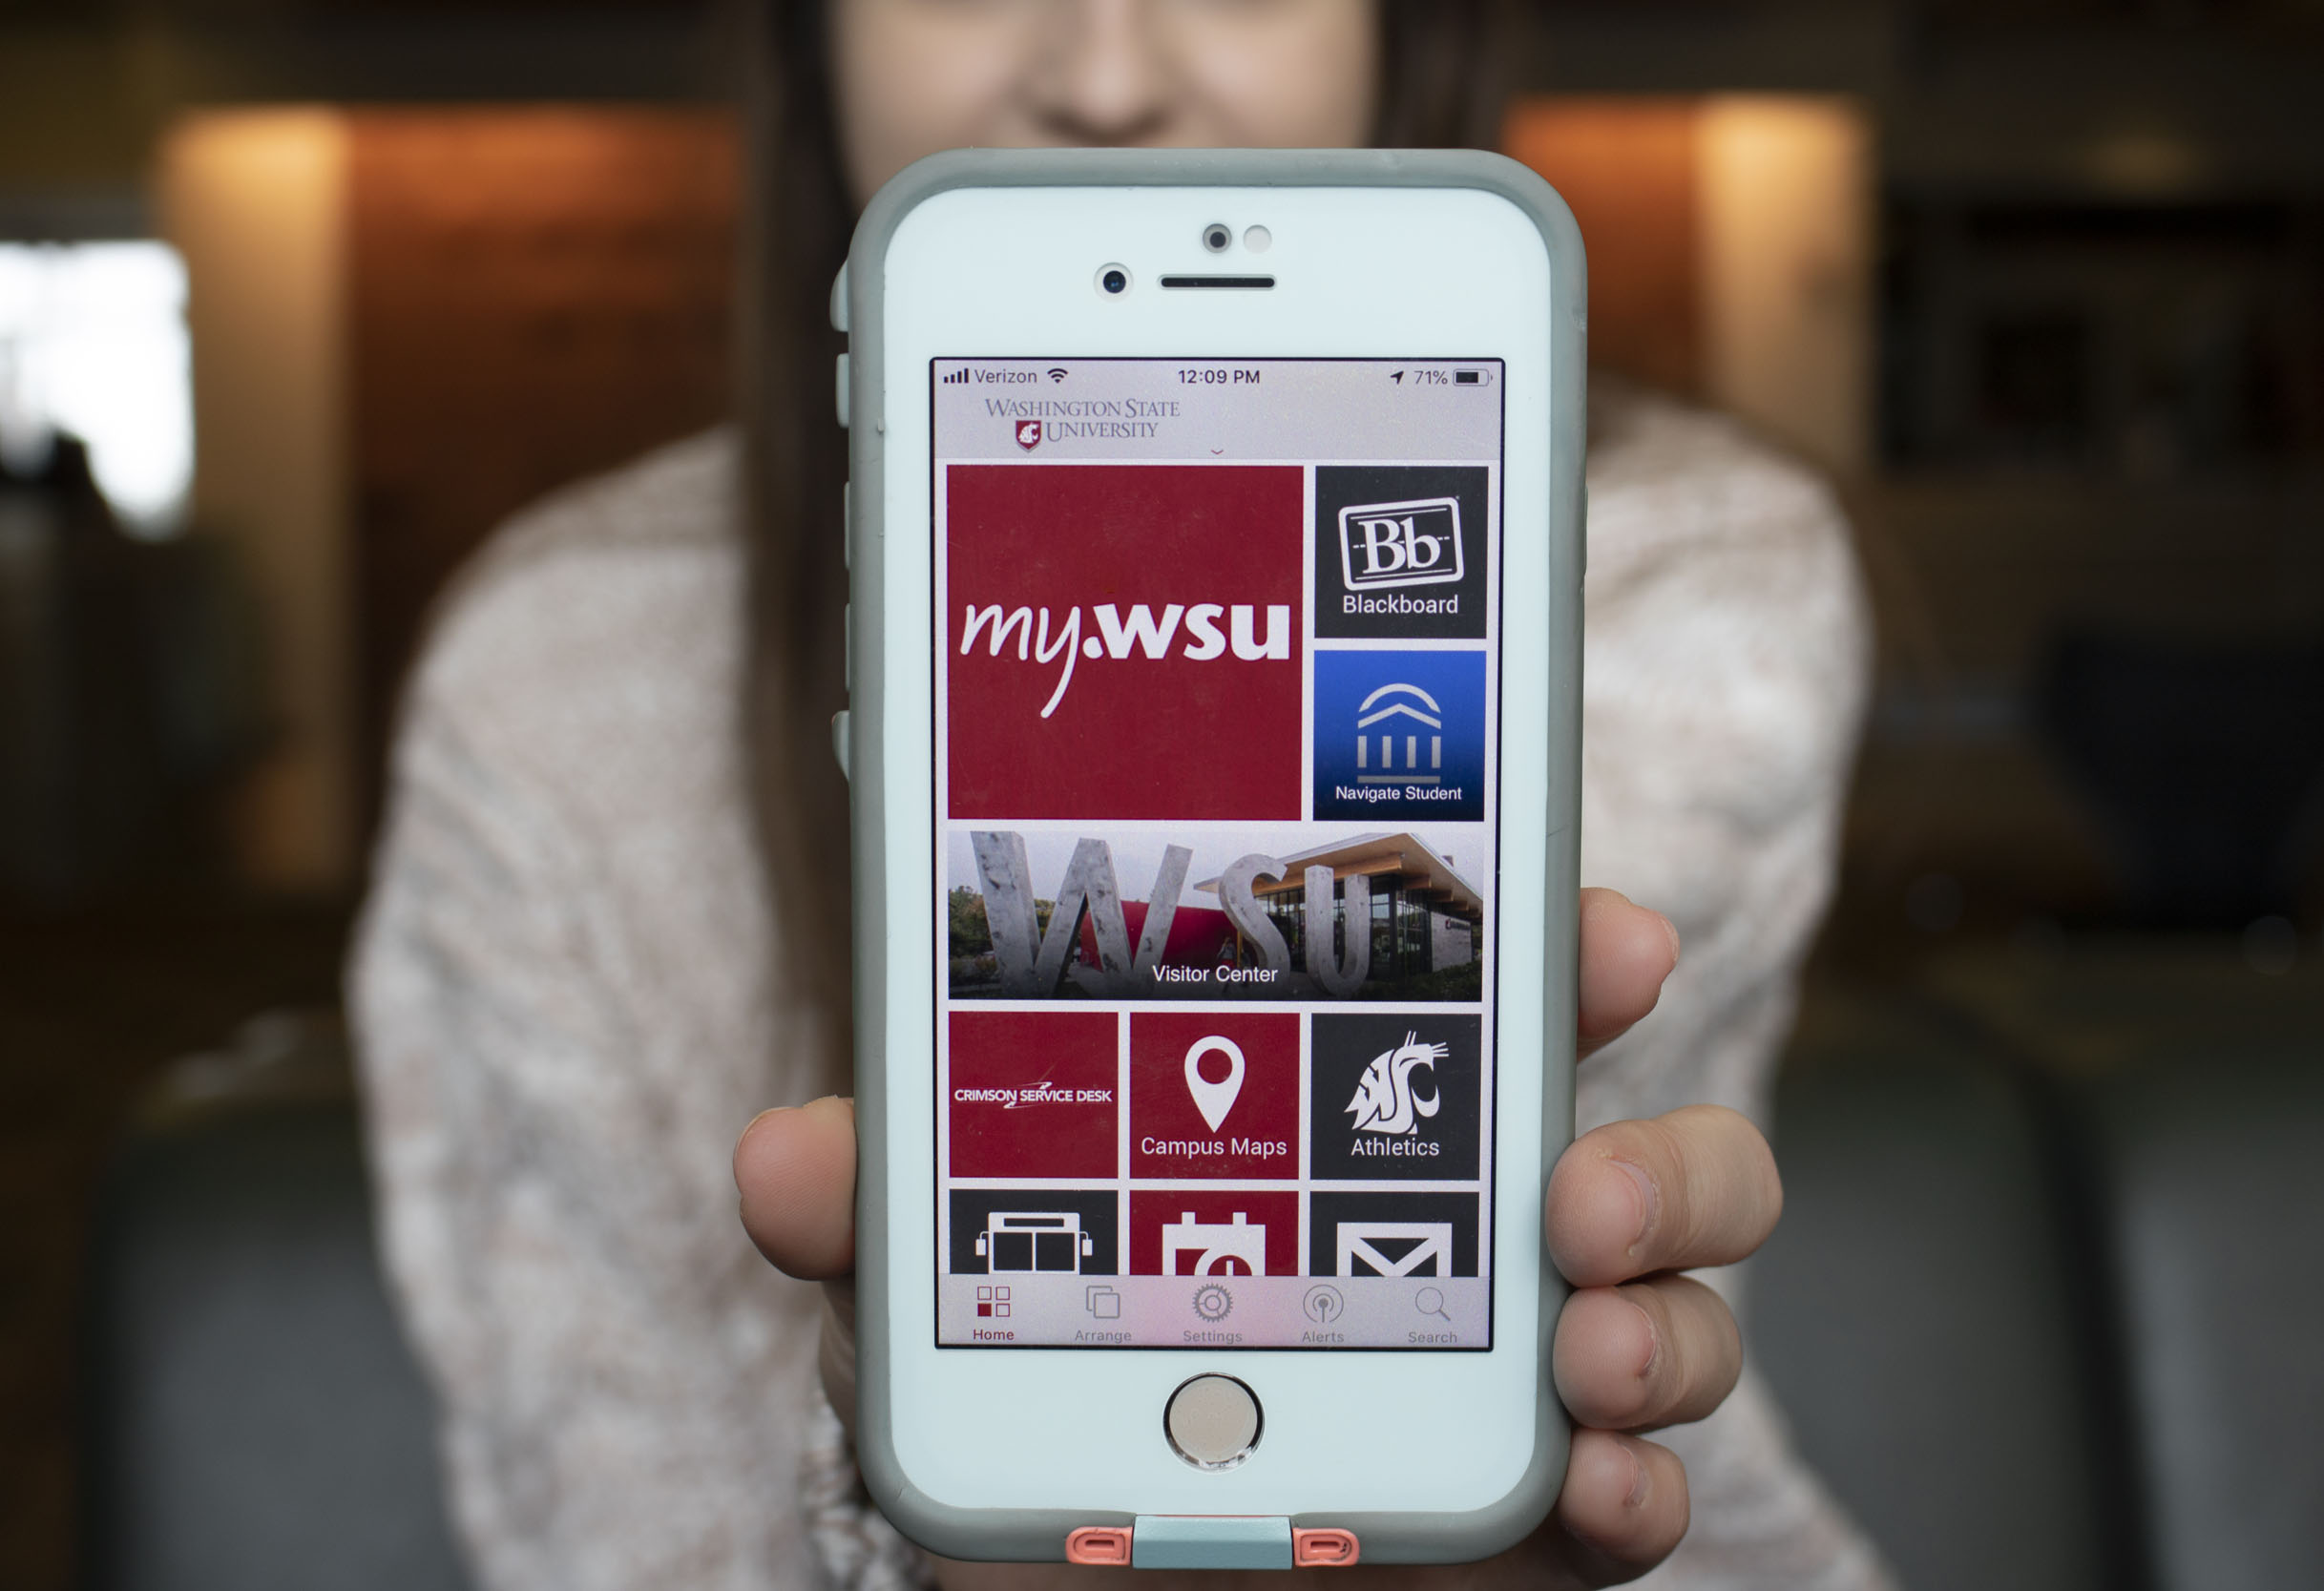 wsu-mobile | Information Technology Services | Washington State